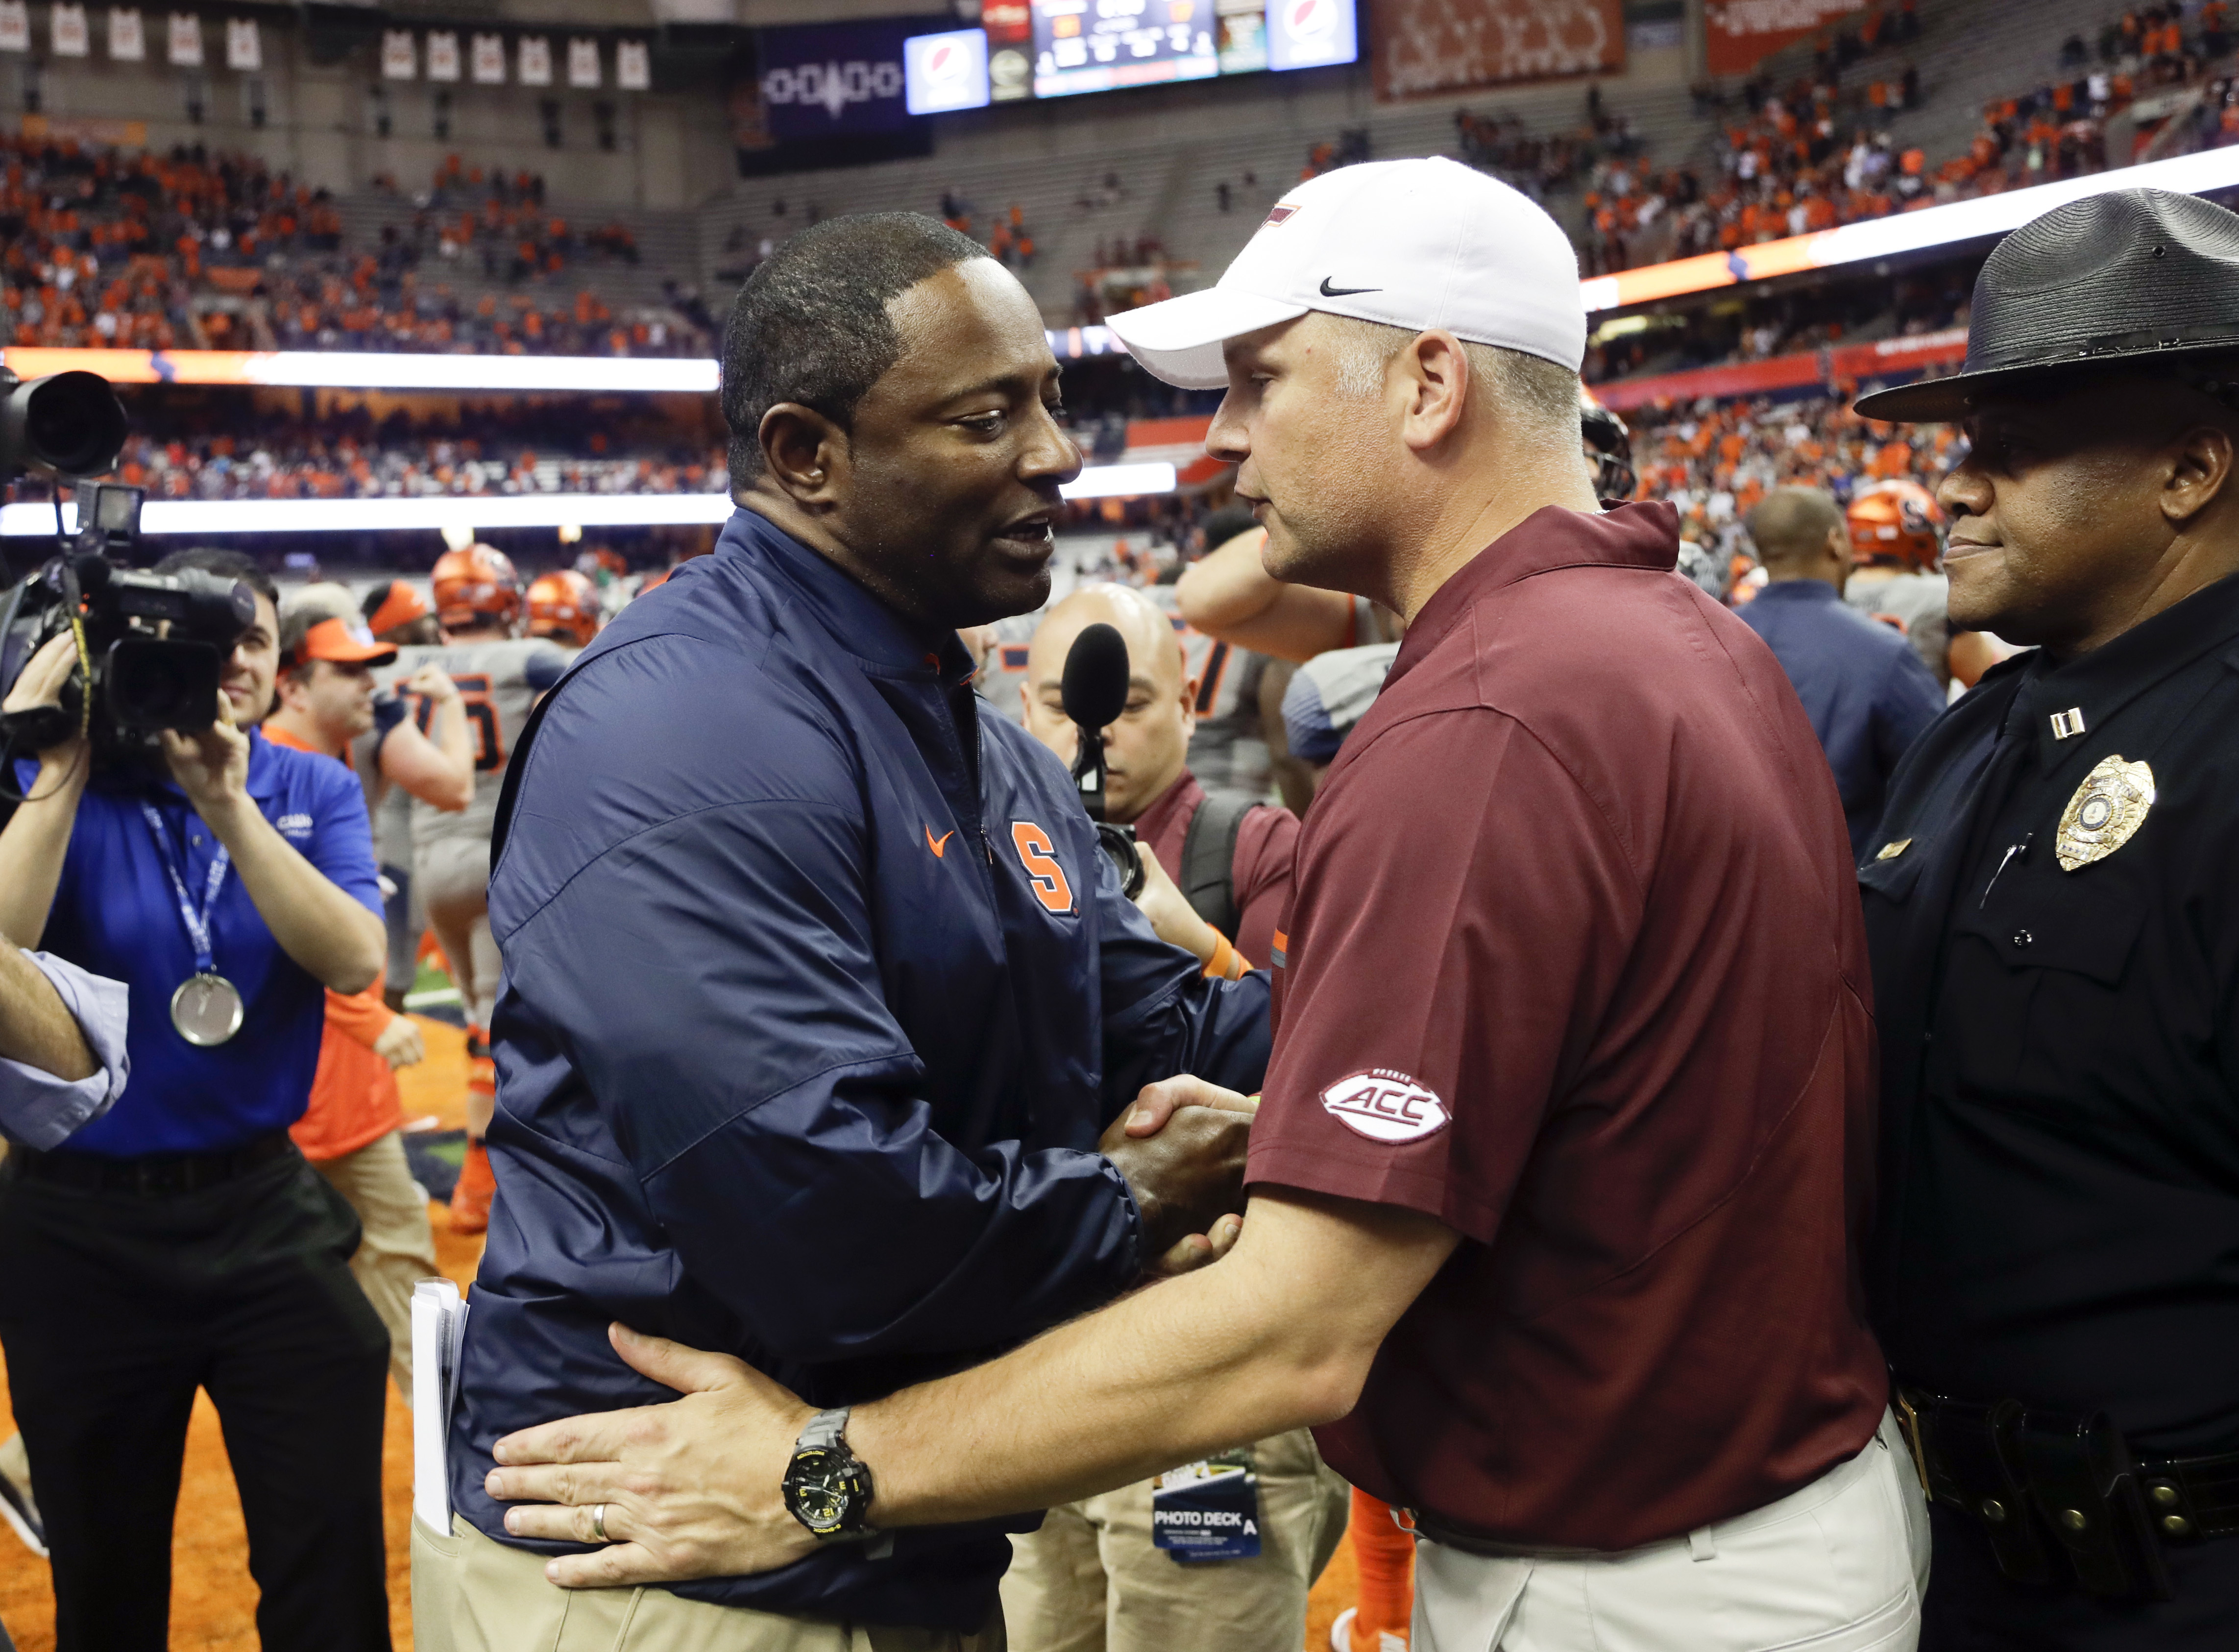 Syracuse head coach Dino Babers, left, and Virginia Tech head coach Justin Fuente talk after an NCAA college football game on Saturday, Oct. 15, 2016, in Syracuse, N.Y. Syracuse won 31-17. (AP Photo/Mike Groll)